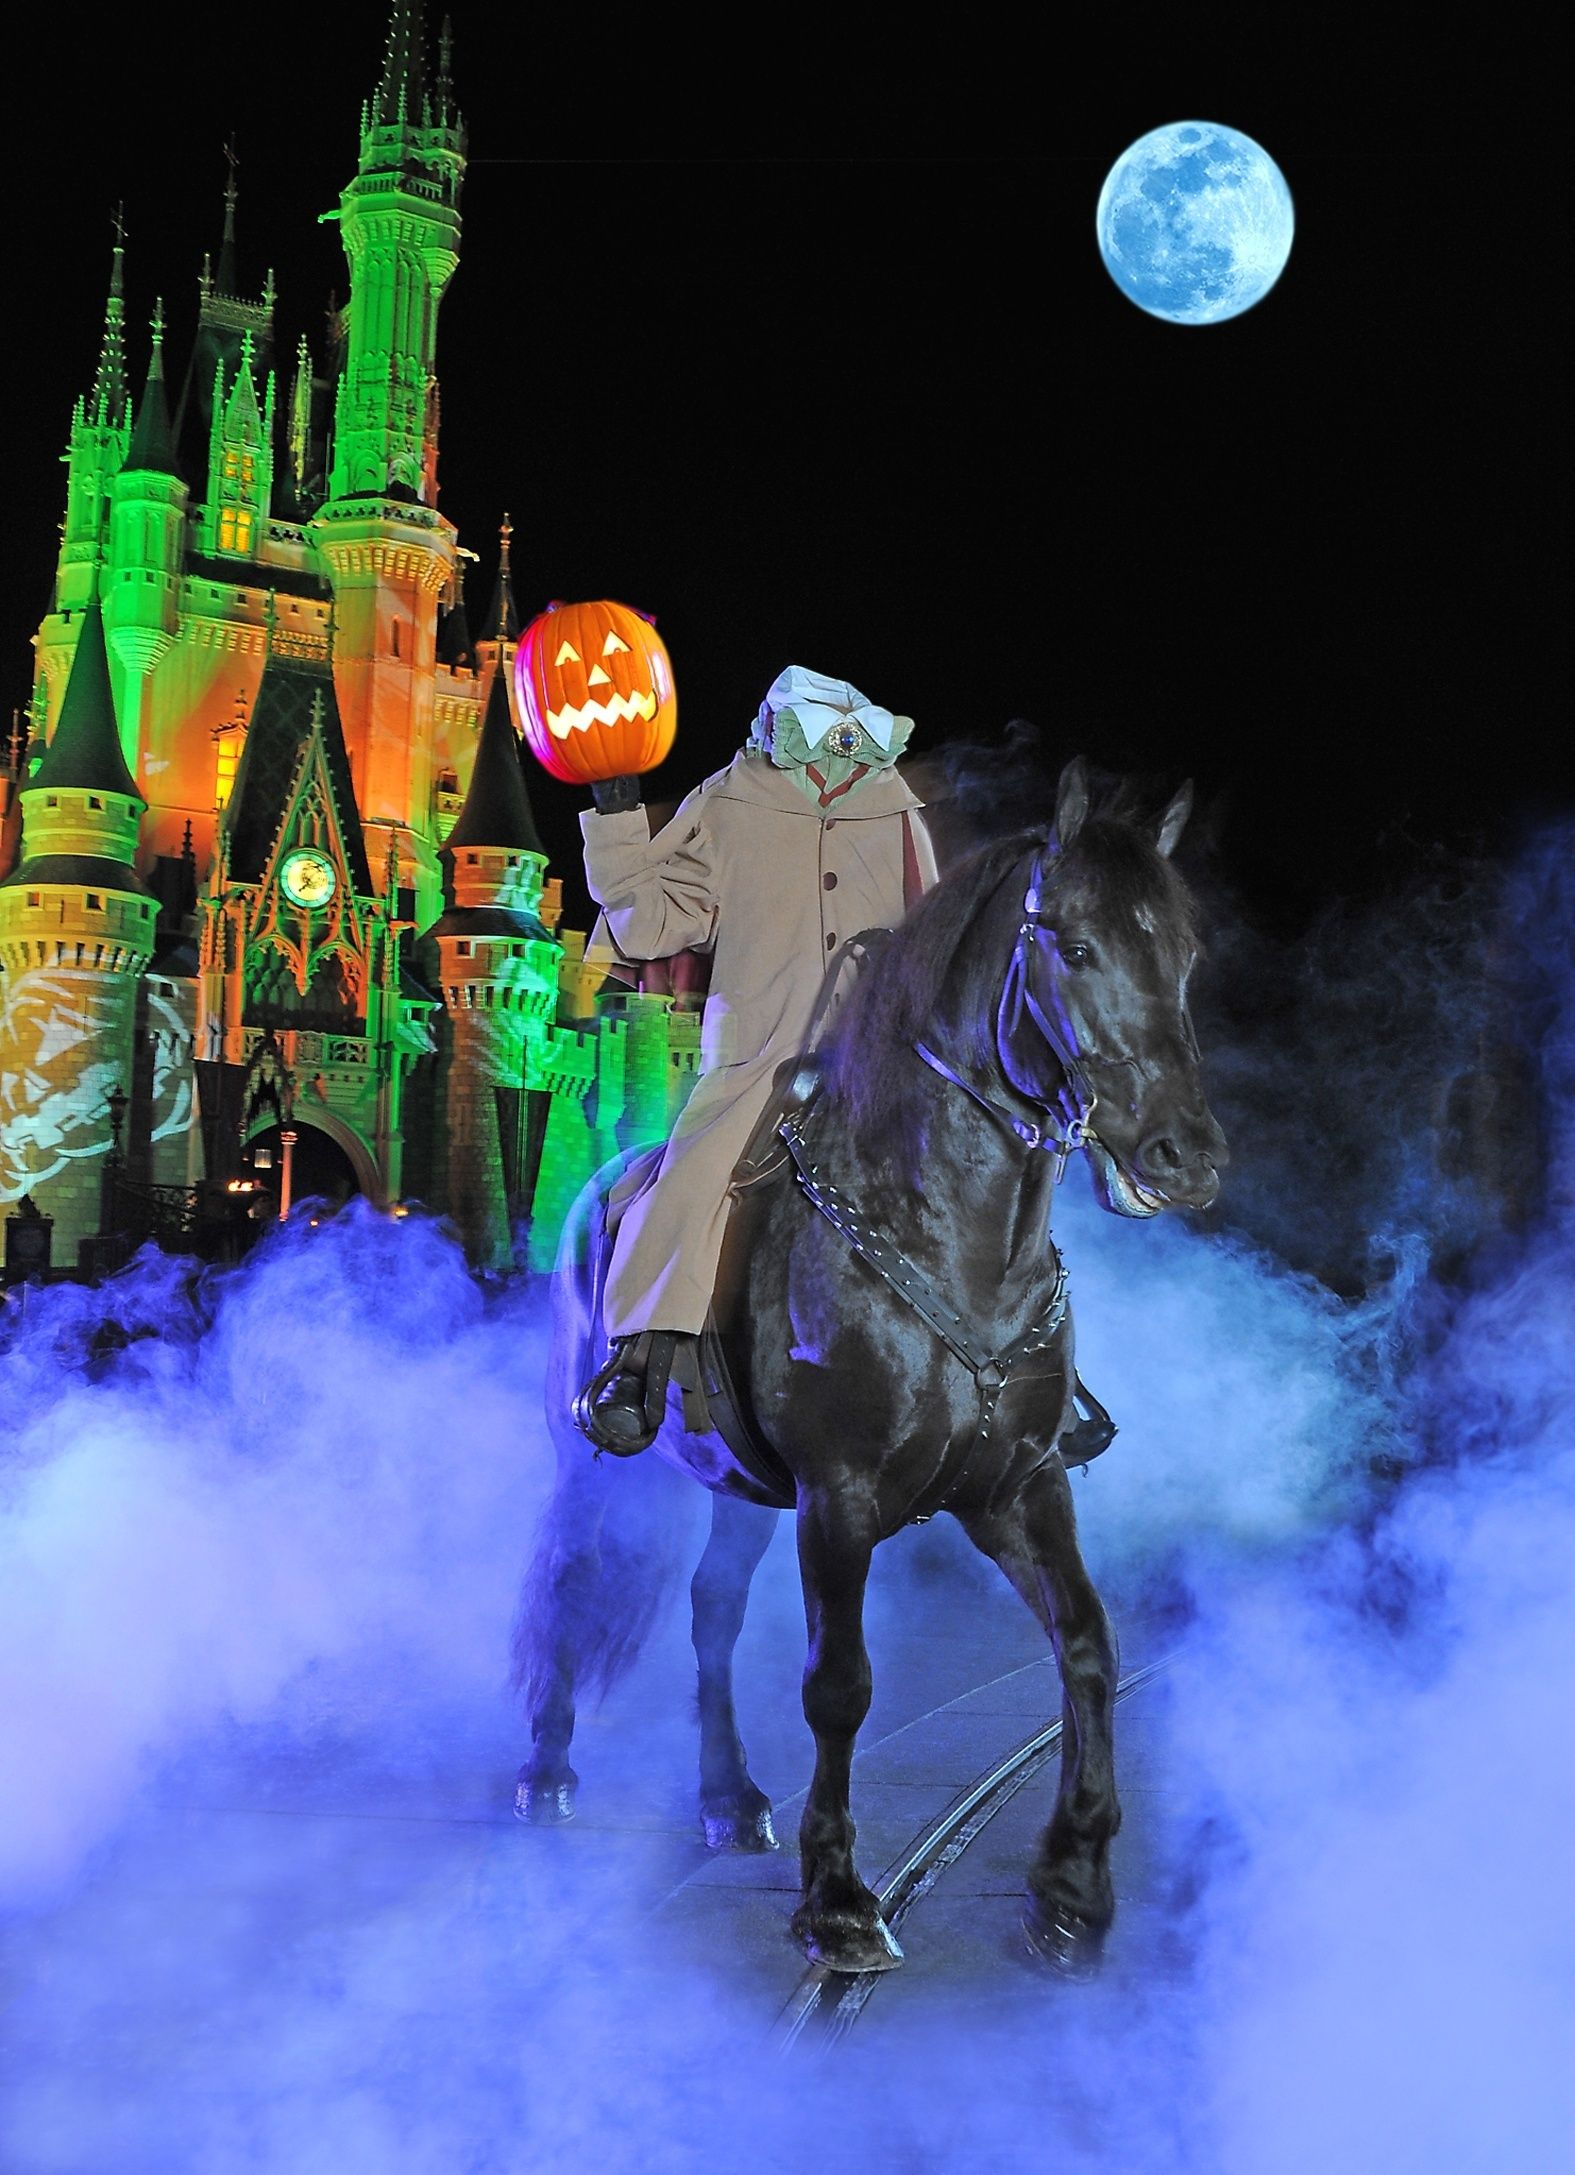 the headless horseman- this halloween parade, music and fireworks